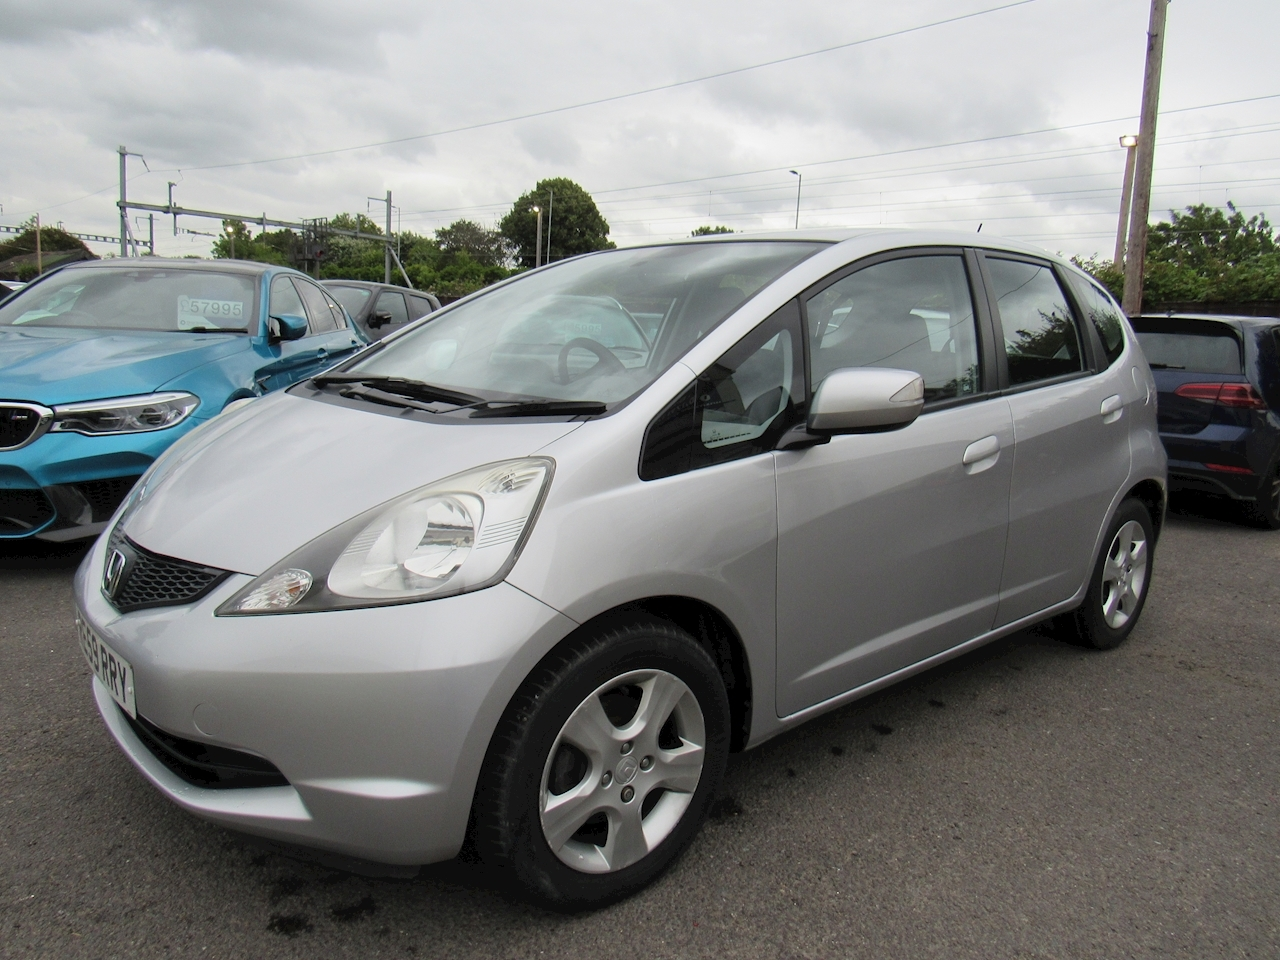 Honda Jazz I-Vtec Es Hatchback 1.3 Manual Petrol